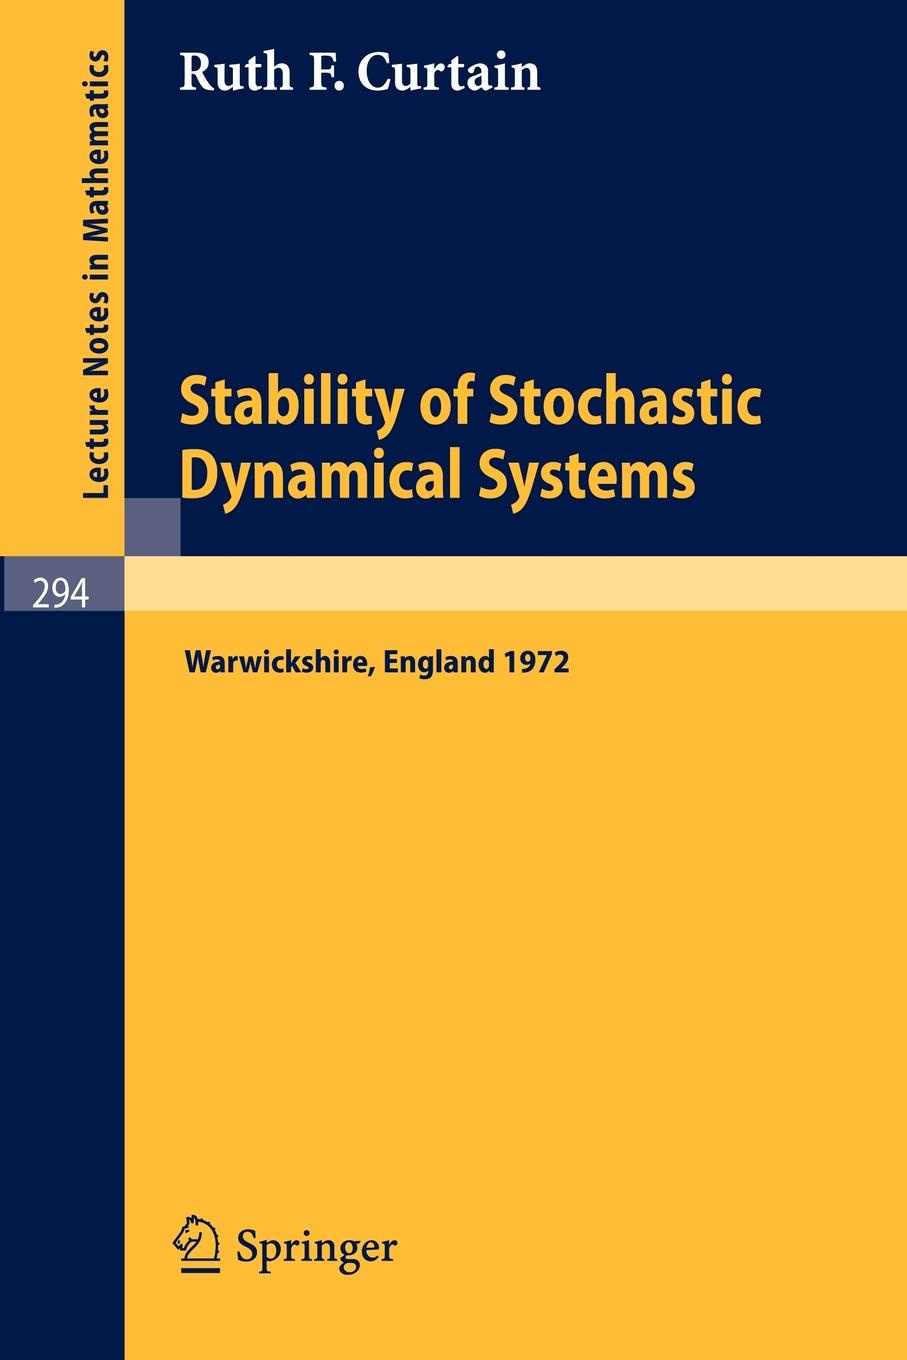 Stability of Stochastic Dynamical Systems. Proceedings of the International Symposium Organized by 'The Control Theory Centre', University of Warwick,